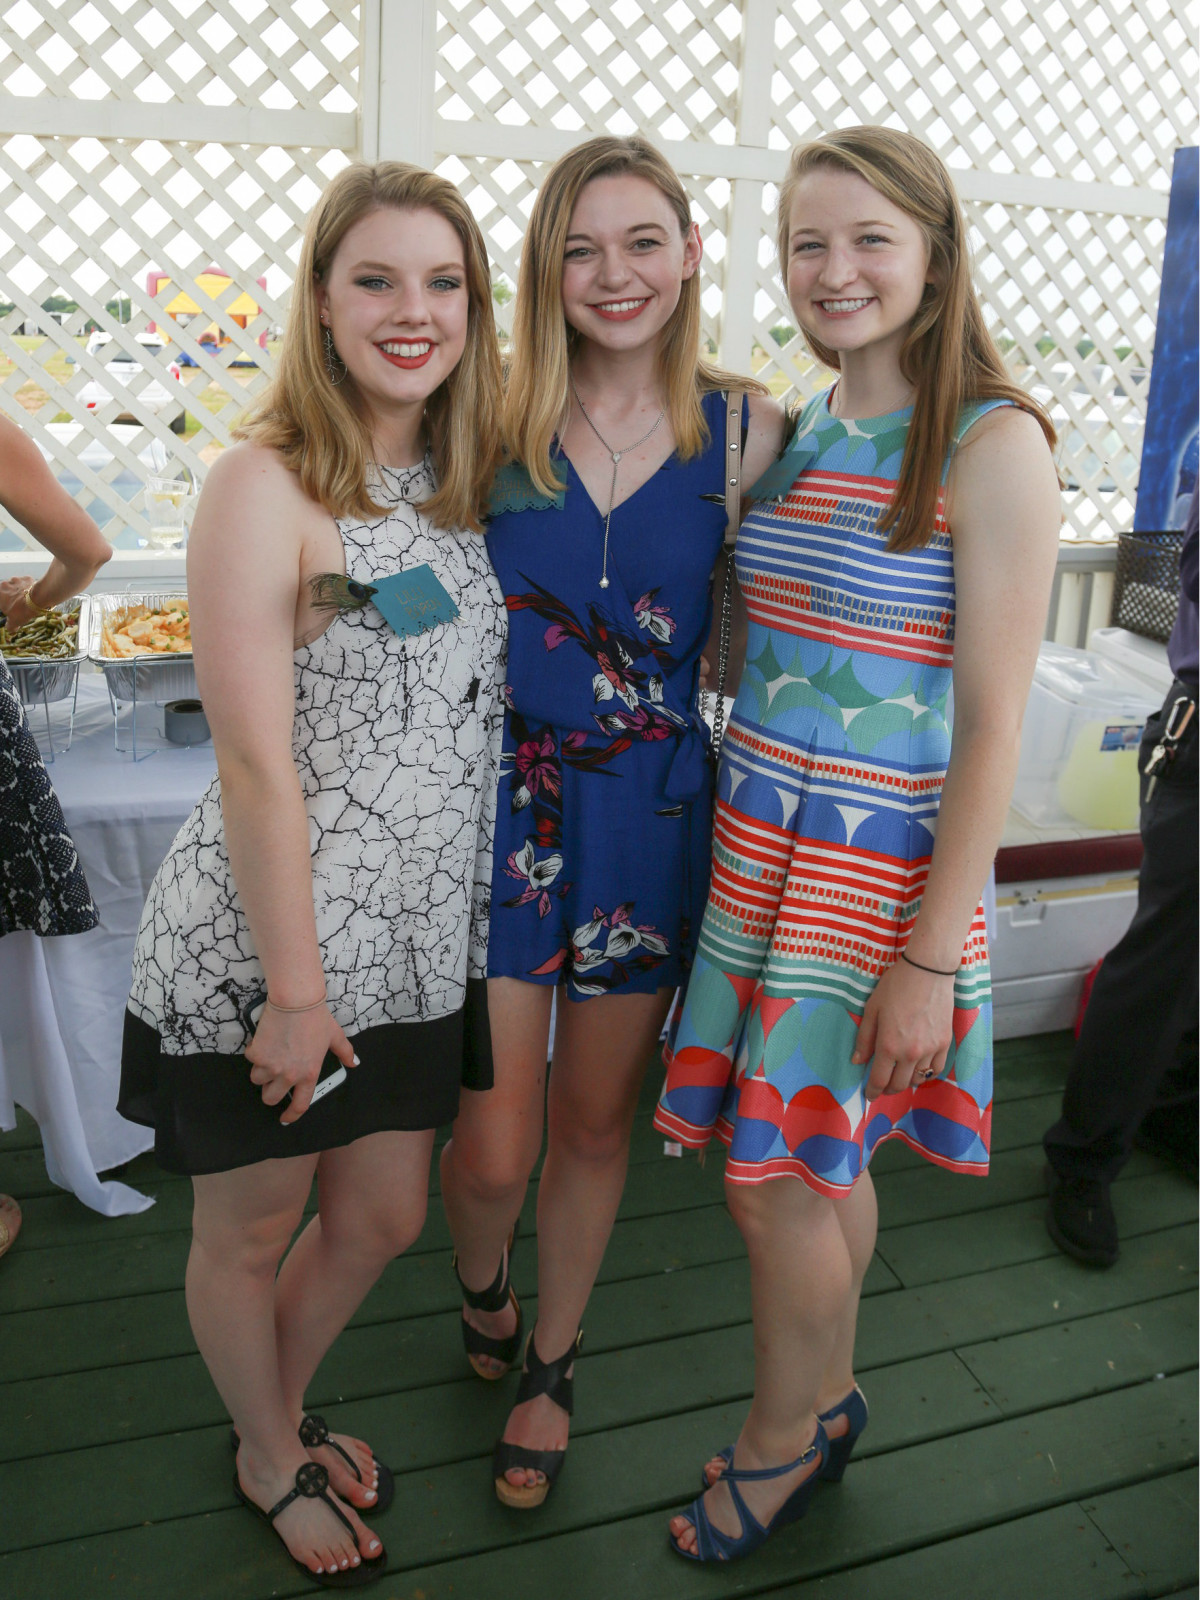 Lilli Boren, Ashlyn Matthews, and Juliana McIlveene